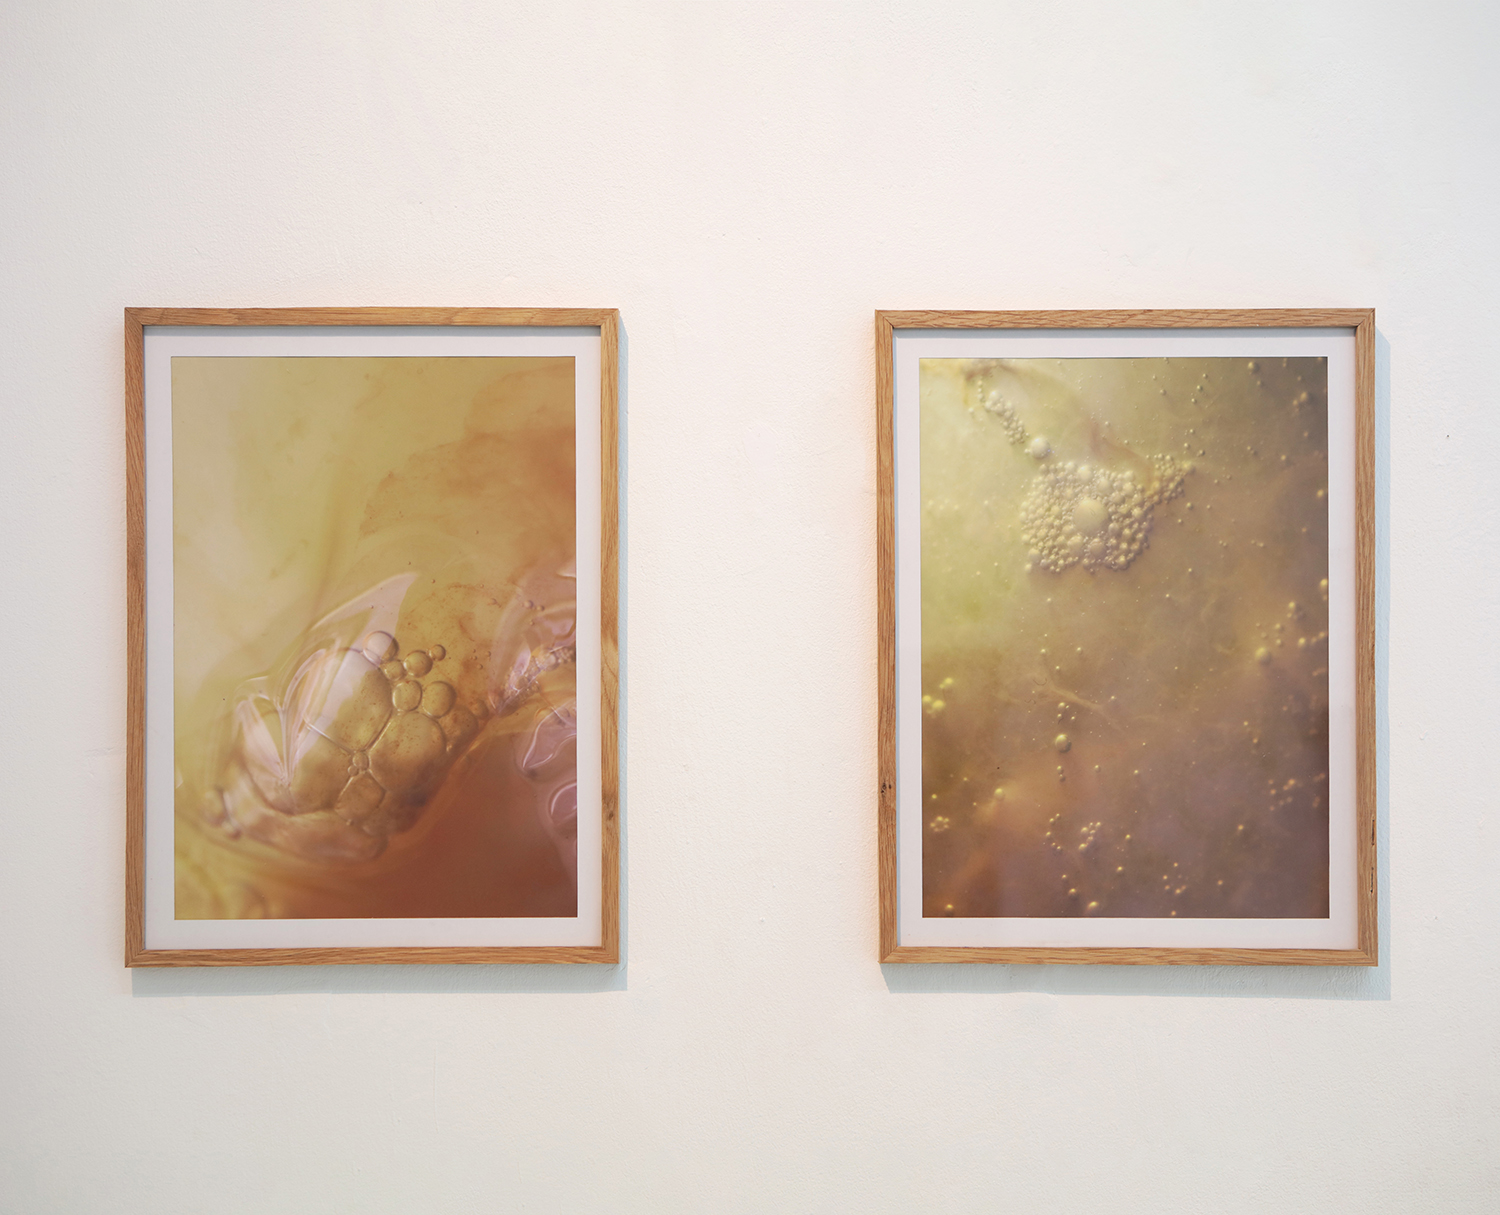 """Studio ThinkingHand """"Becomming, connecting, flowing, transforming 1 & 2.�  Photo: Emily Petersen."""